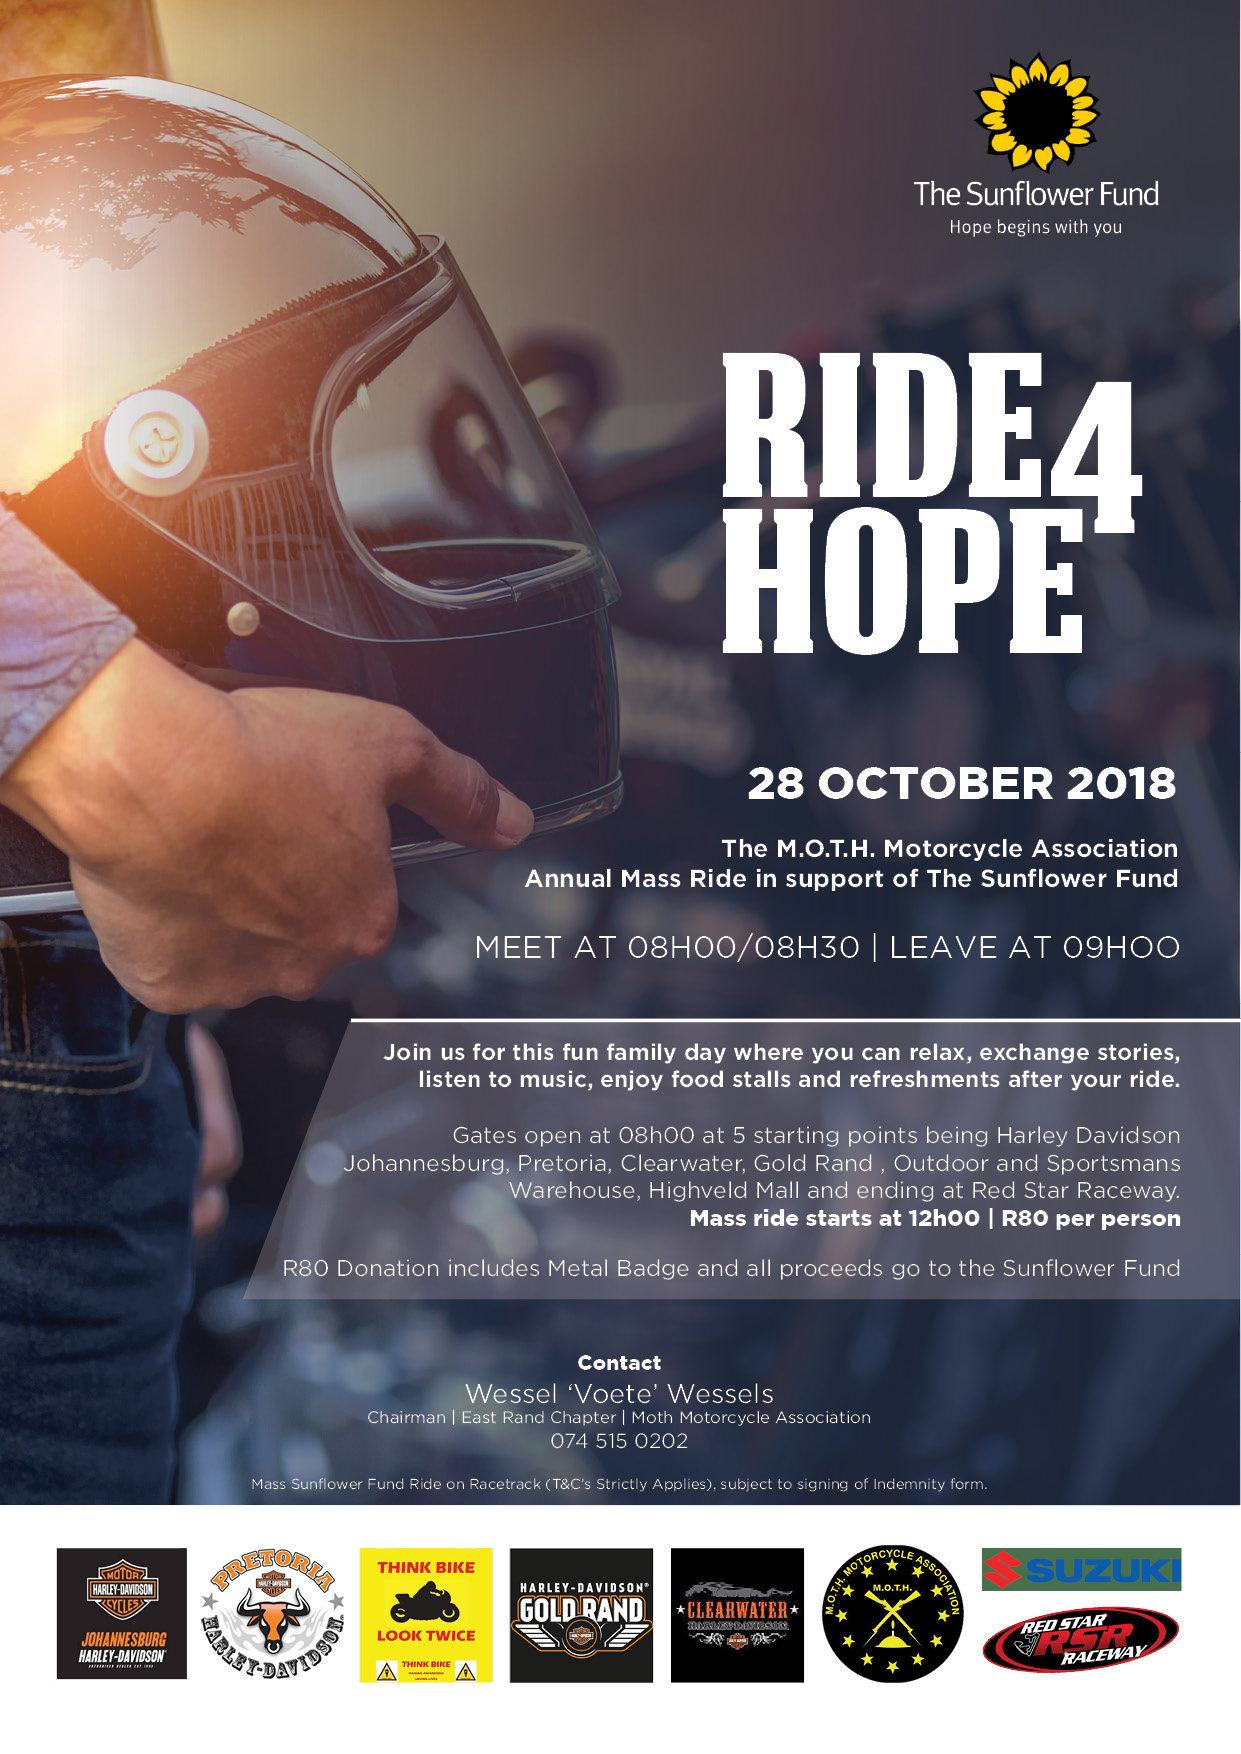 ride4hope_invitation